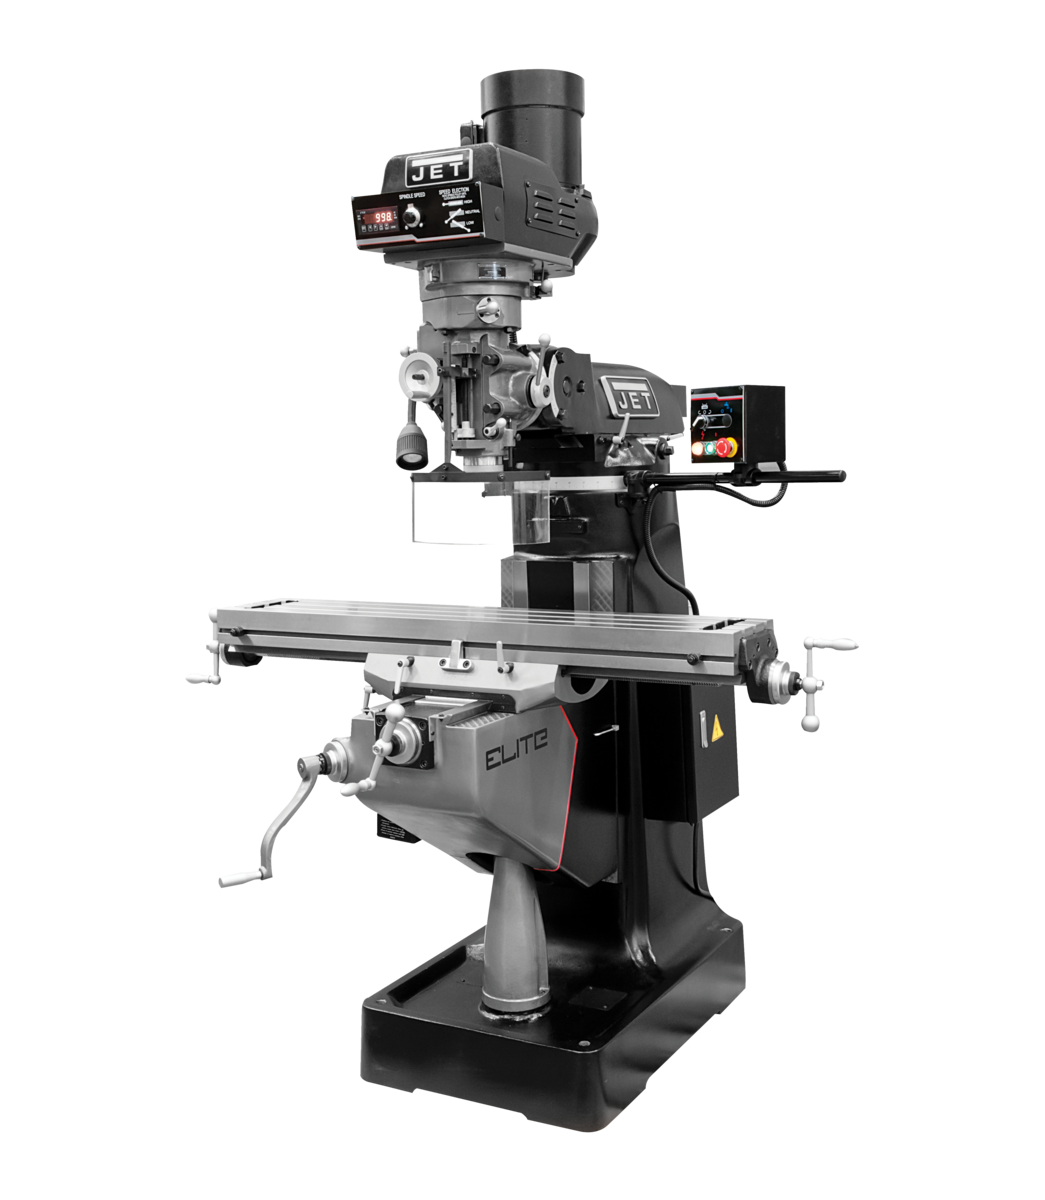 EVS-949 Mill with 3-Axis Newall DP700 (Quill) DRO and Servo X, Y-Axis Powerfeeds